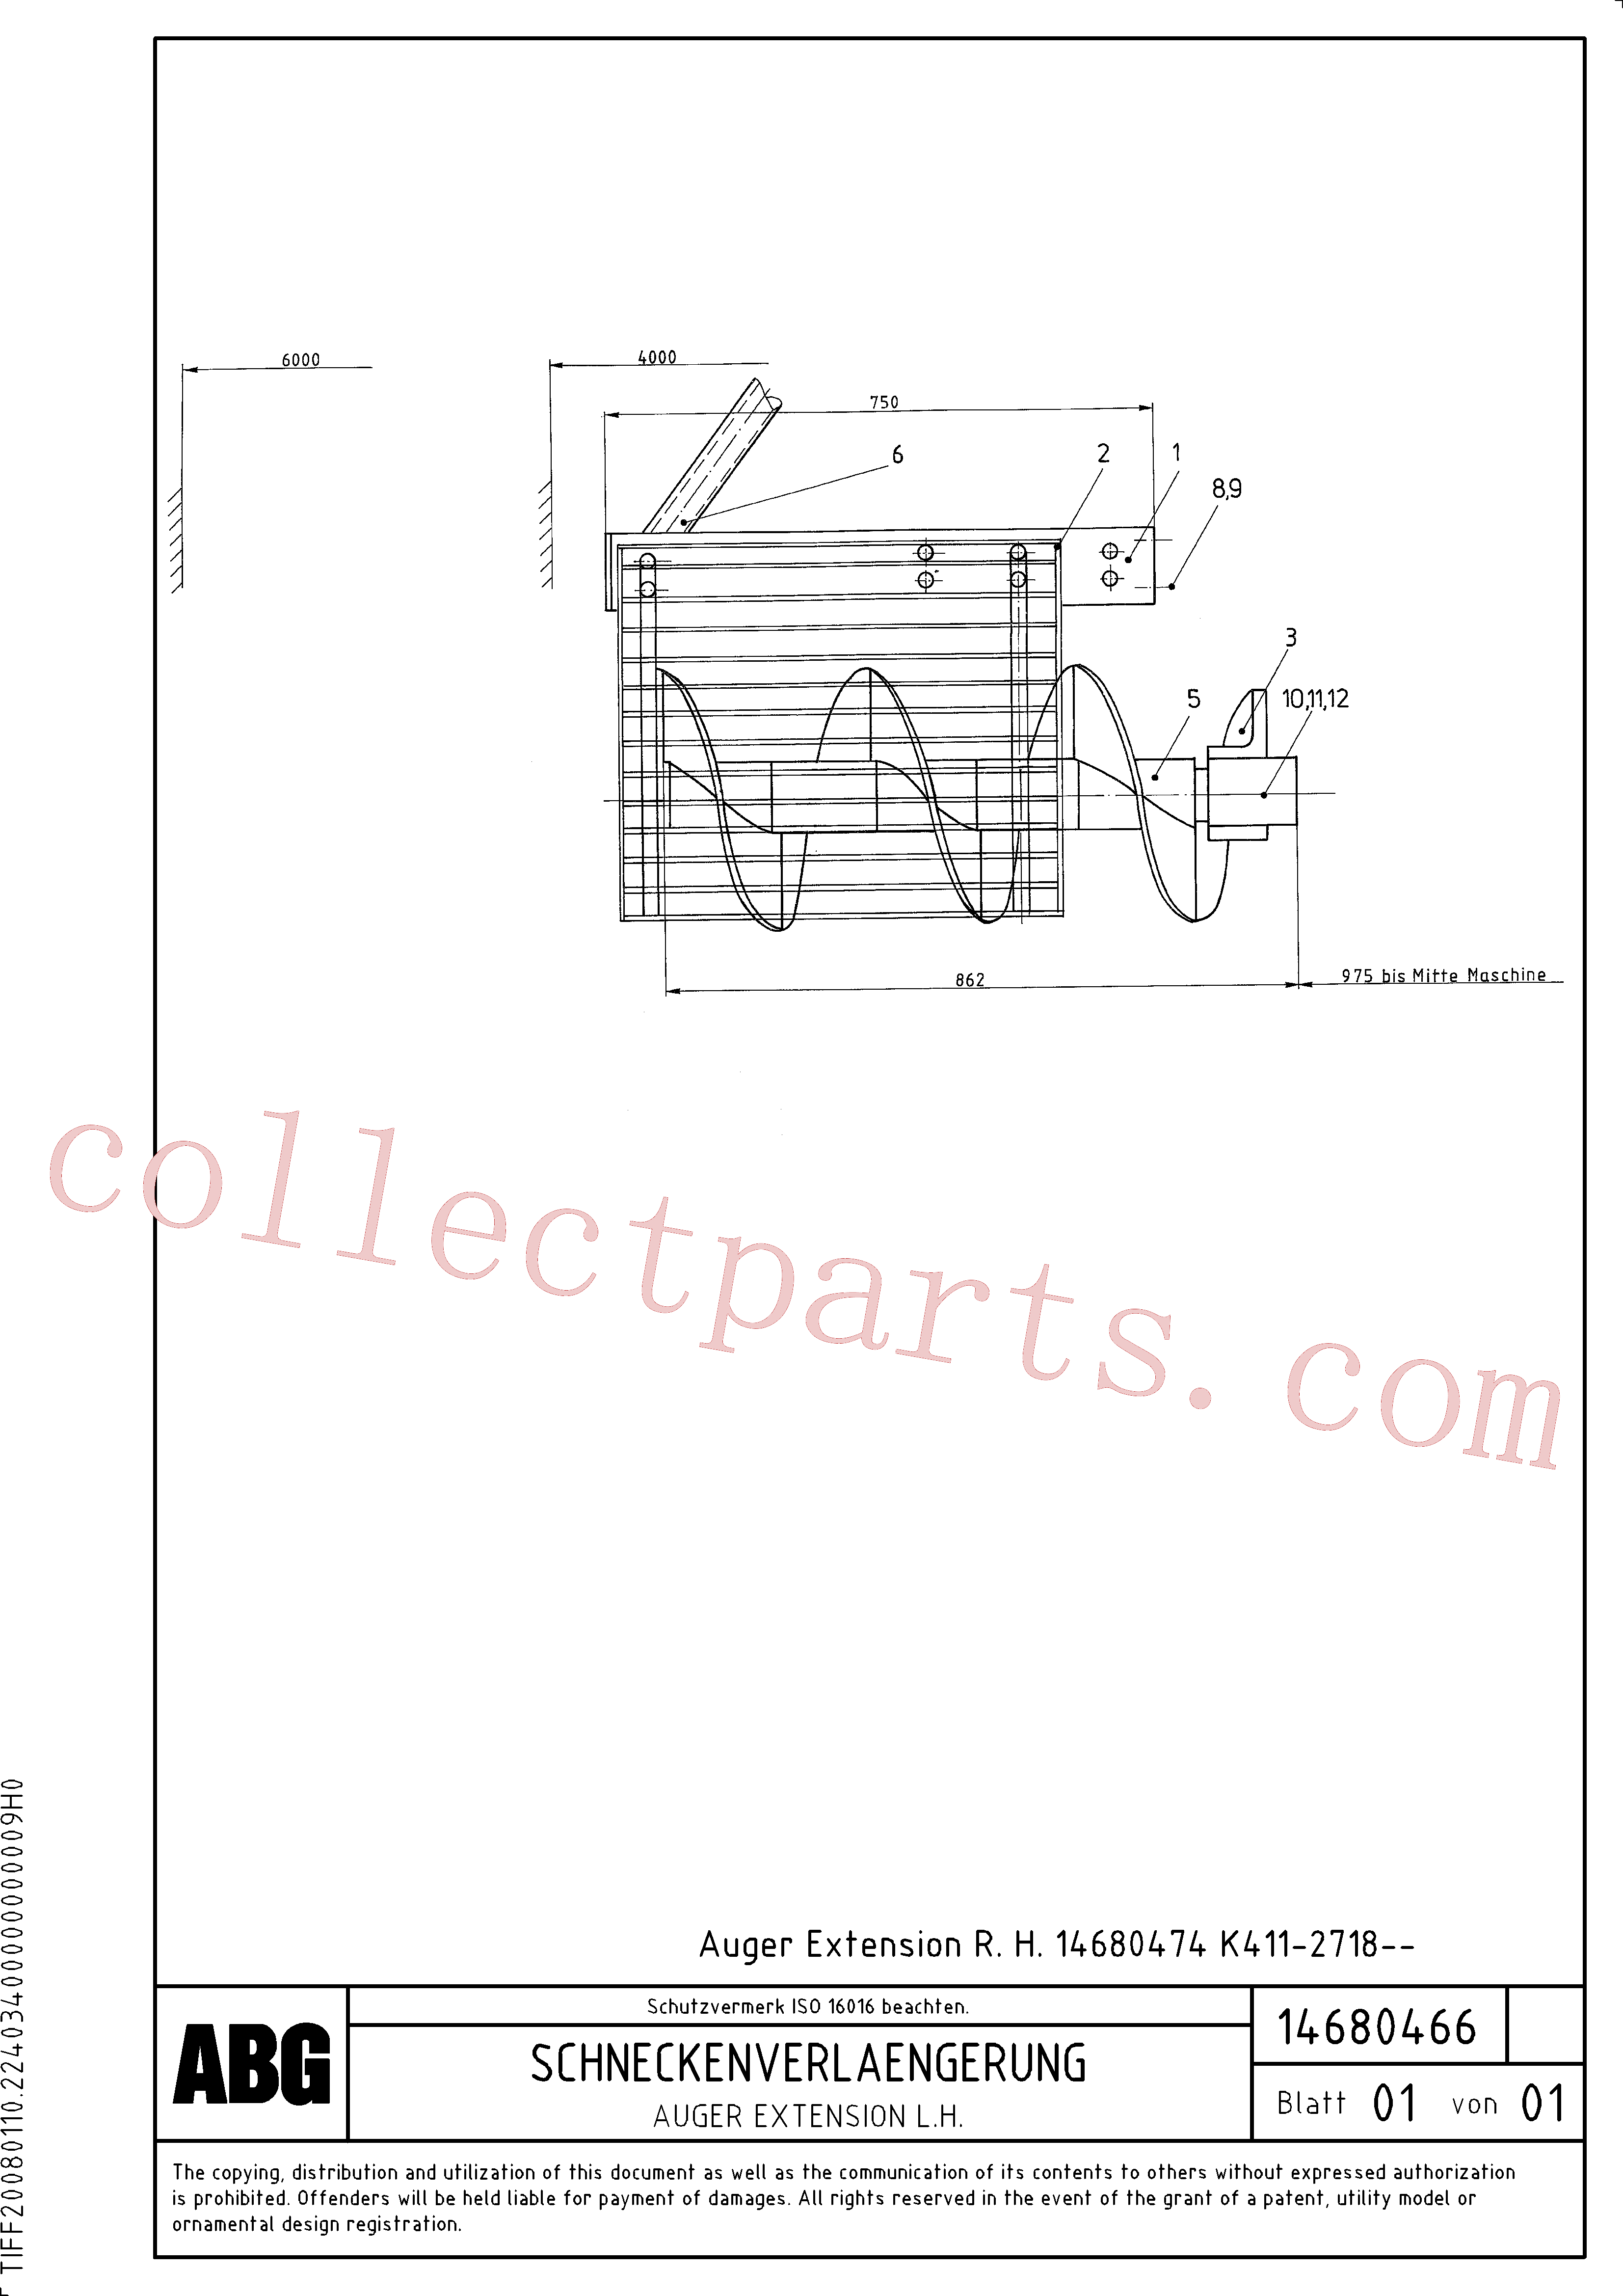 RM13917844 for Volvo Auger extension(1046461 assembly)